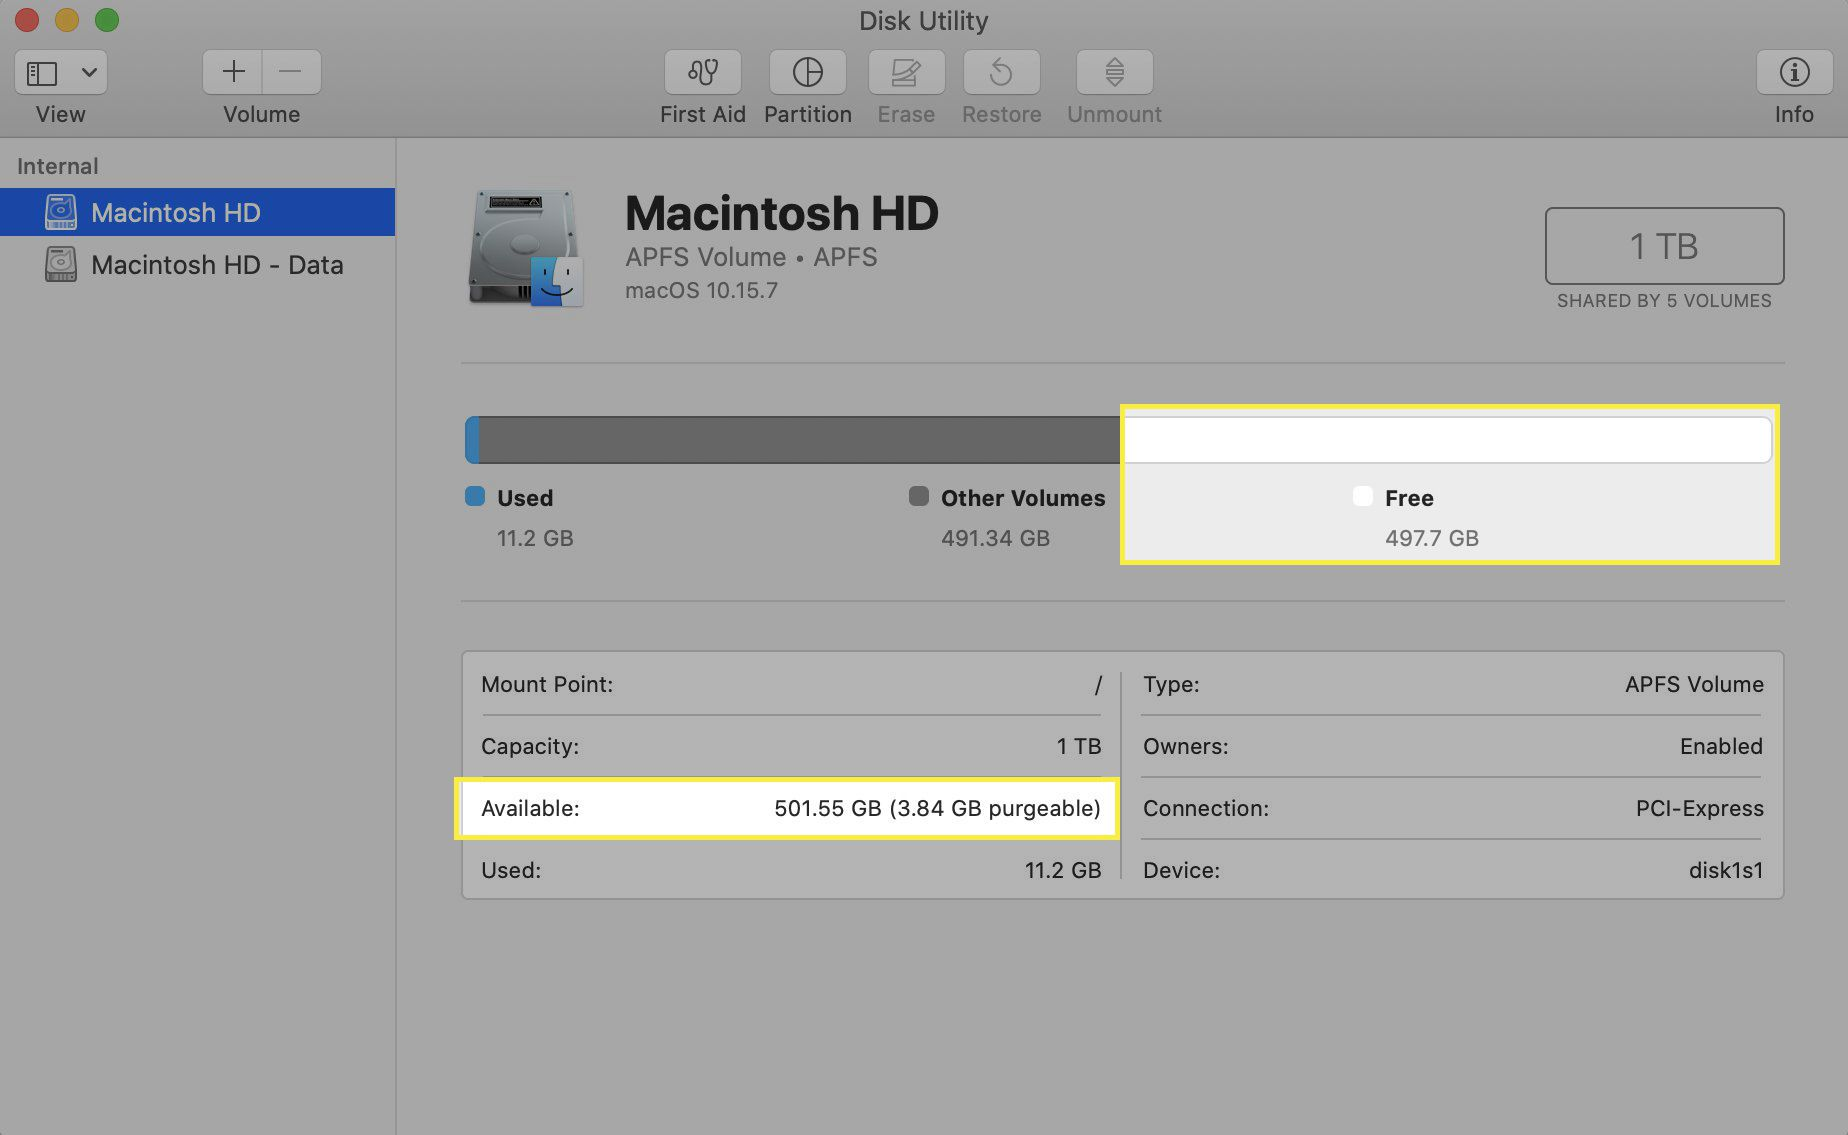 Disk Utility program showing how much free storage space is left.